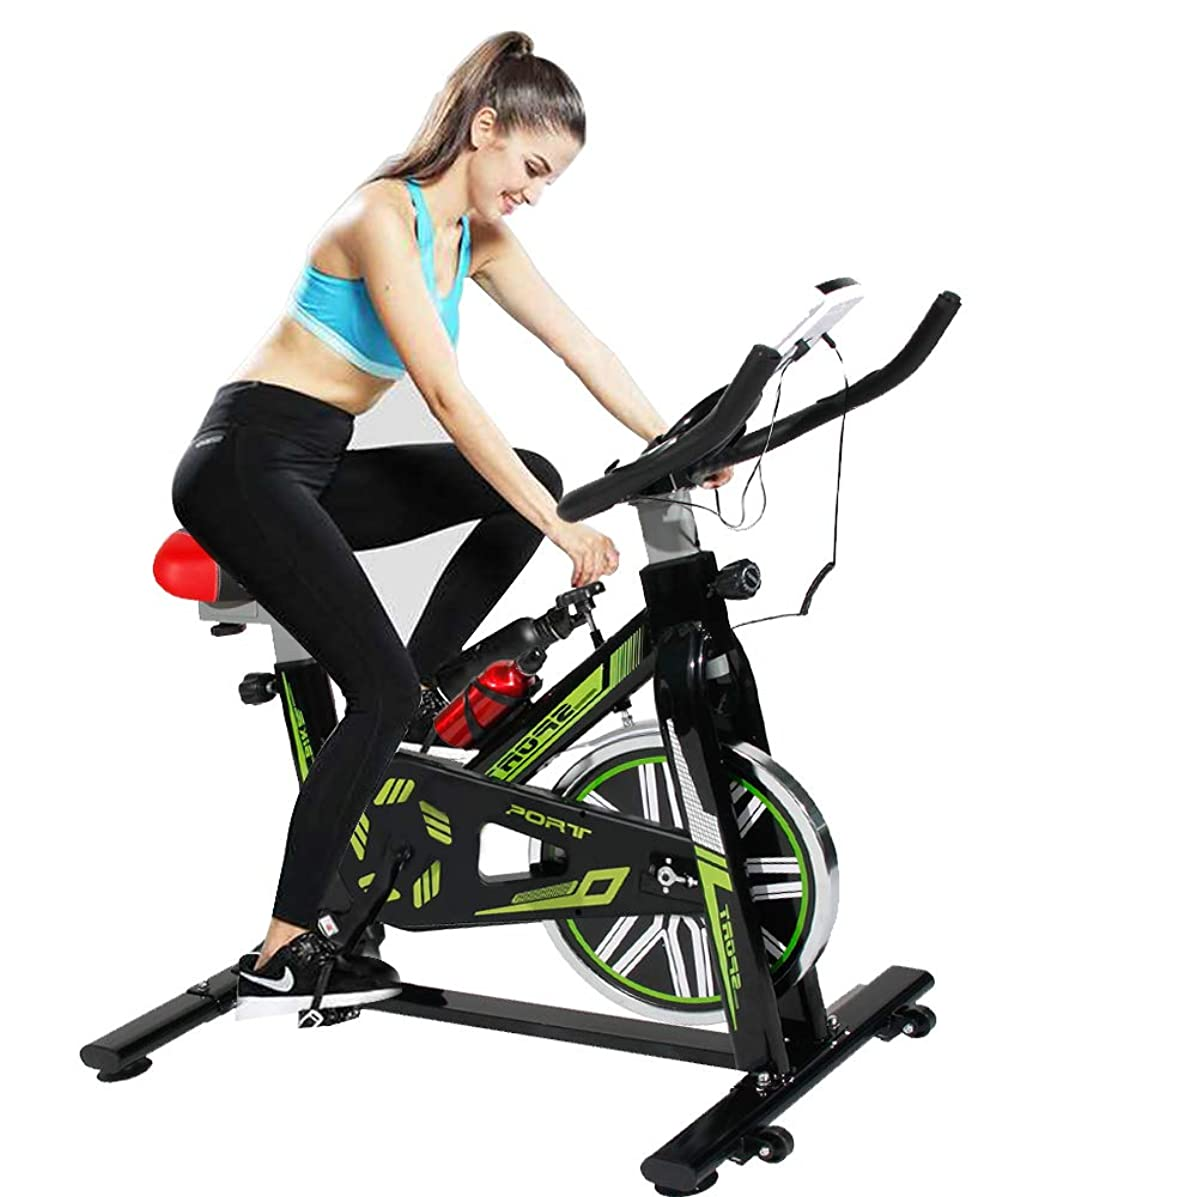 SogesHome Stationary Exercise Bike Indoor Cycling Bicycle Indoor Spinning Exercise Bike,LCD Display Bicycle Heart Pulse Trainer Bike with Belt Drive, Green and Black JS-2002-SH